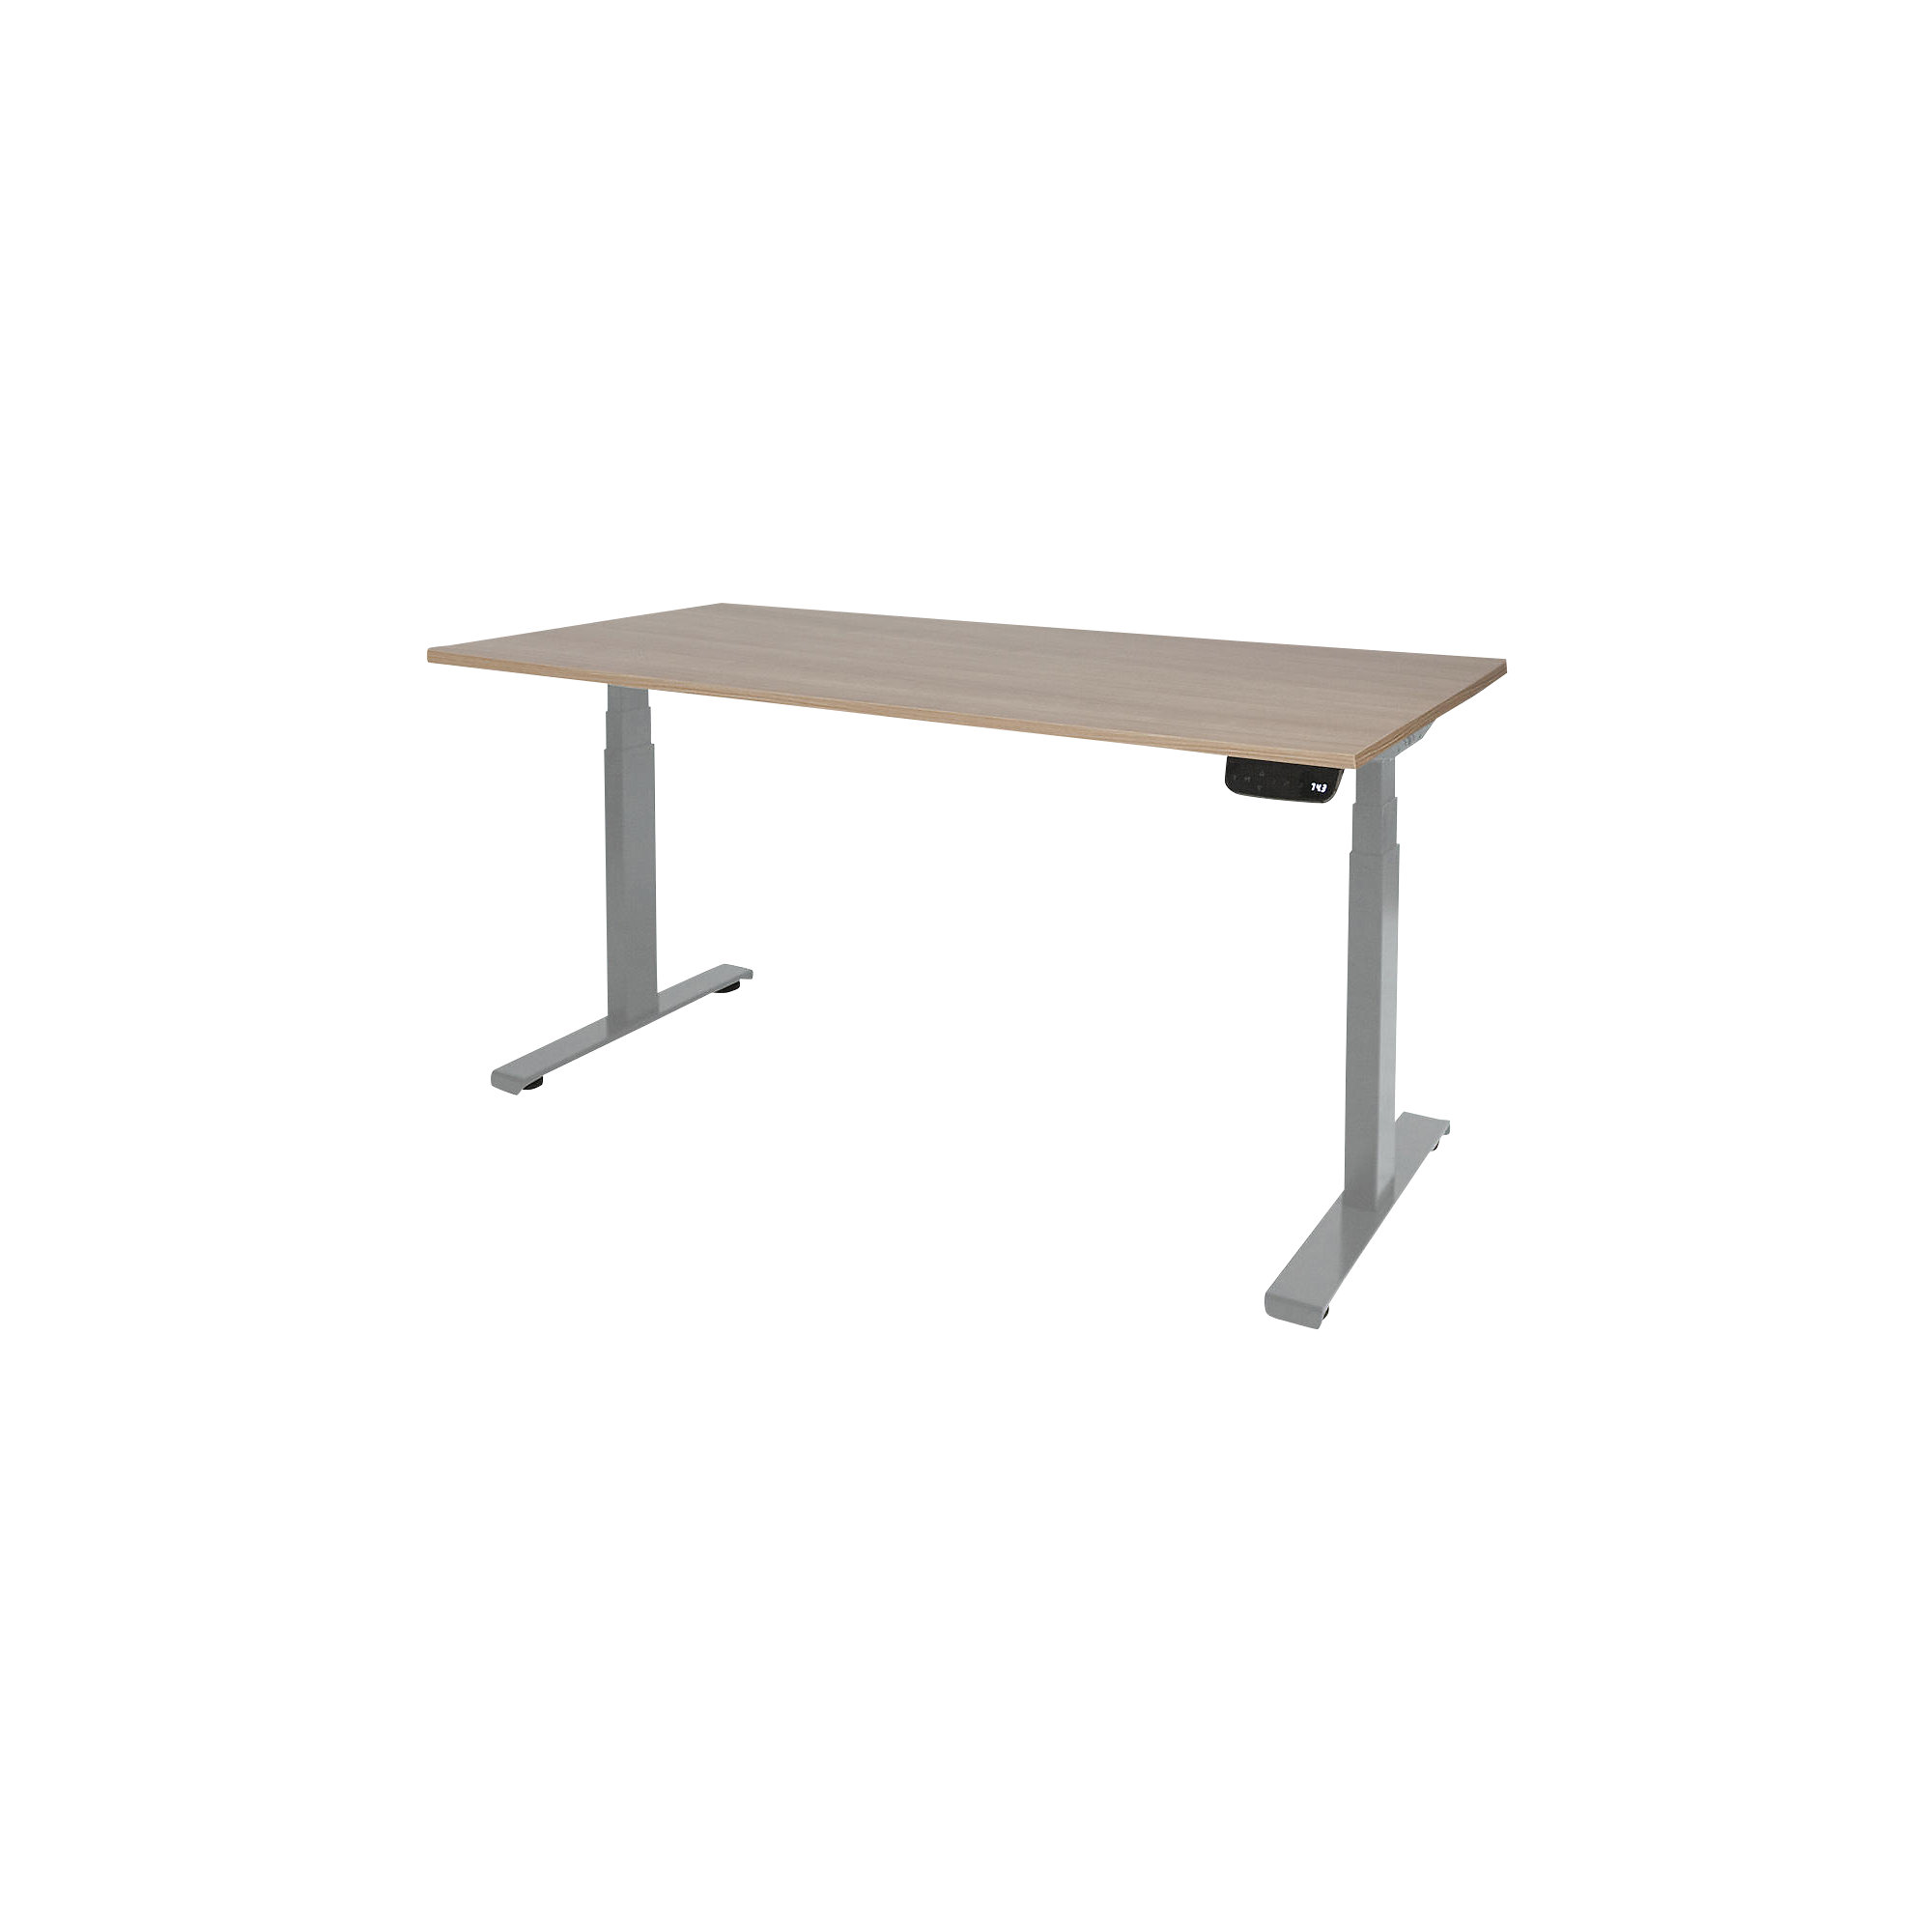 Schaffenburg Zit sta bureau Dextro Plus havana cherry light t poot 180x90 25mm alu